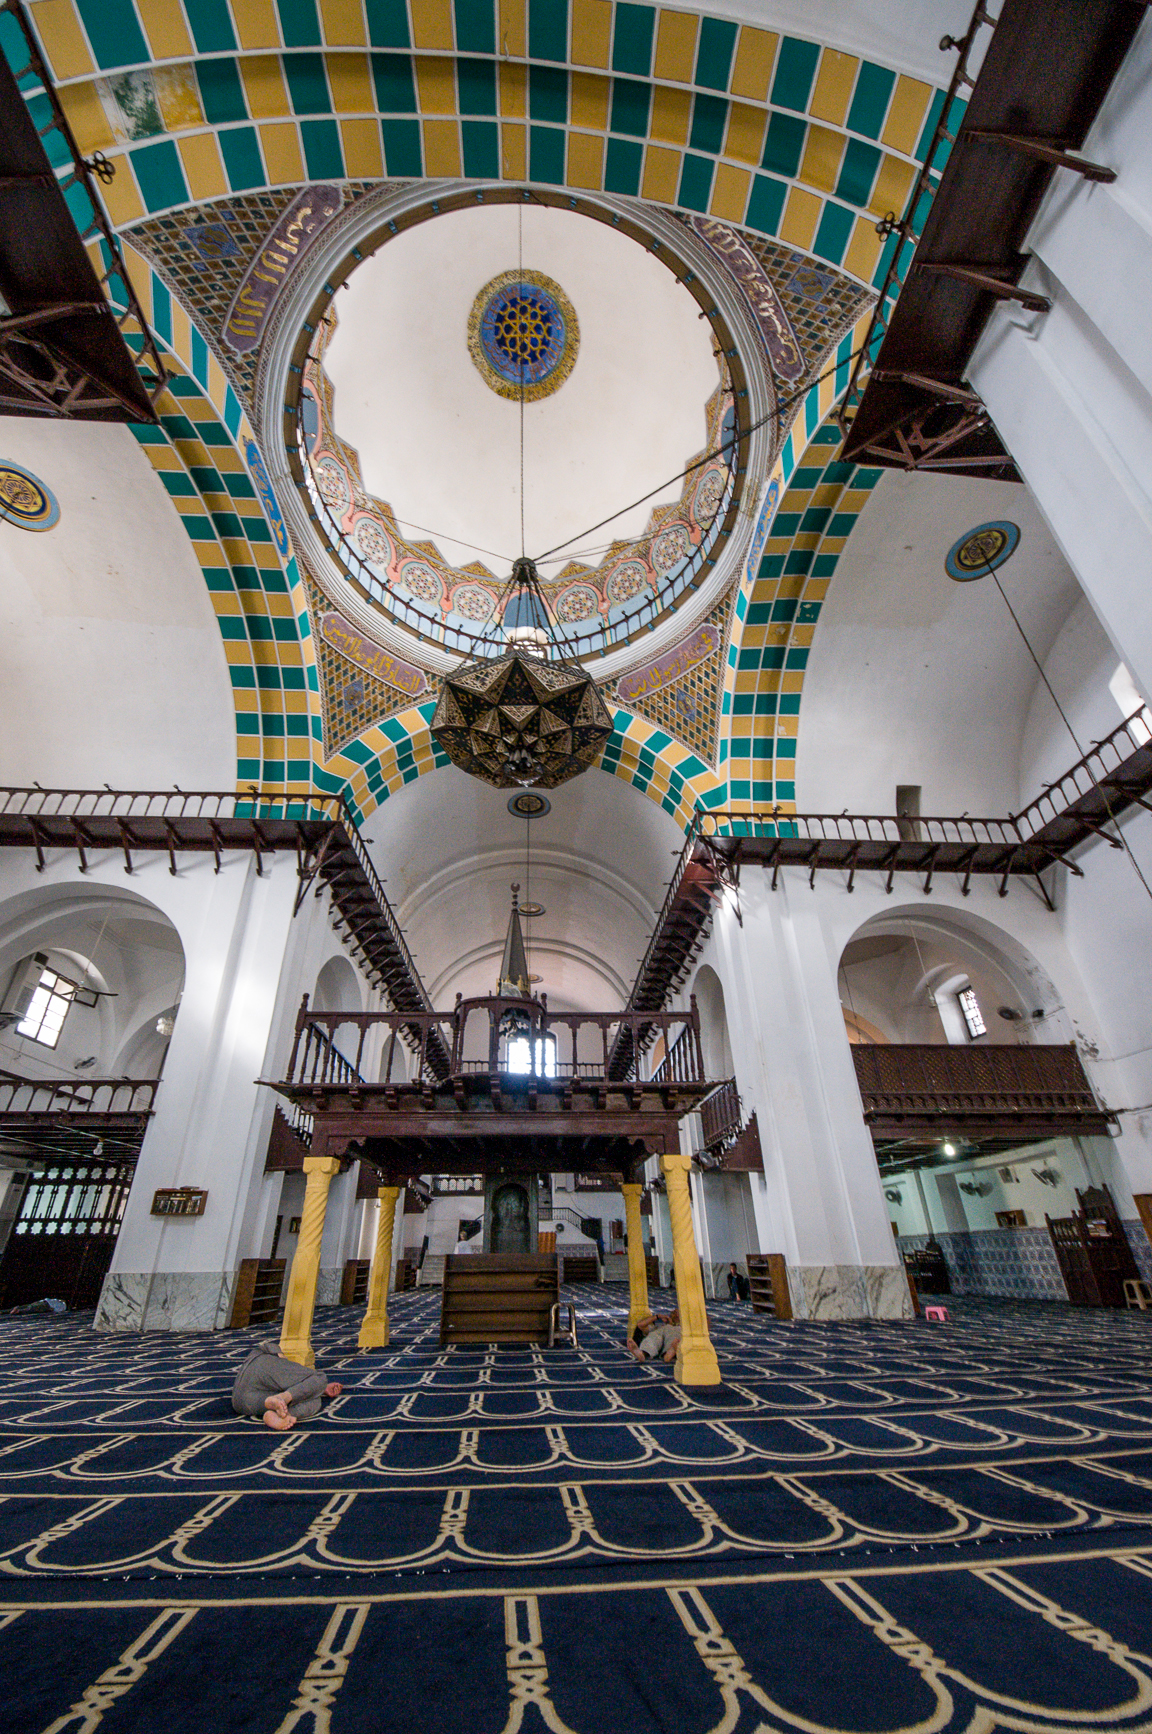 Inside the El Djadid mosque